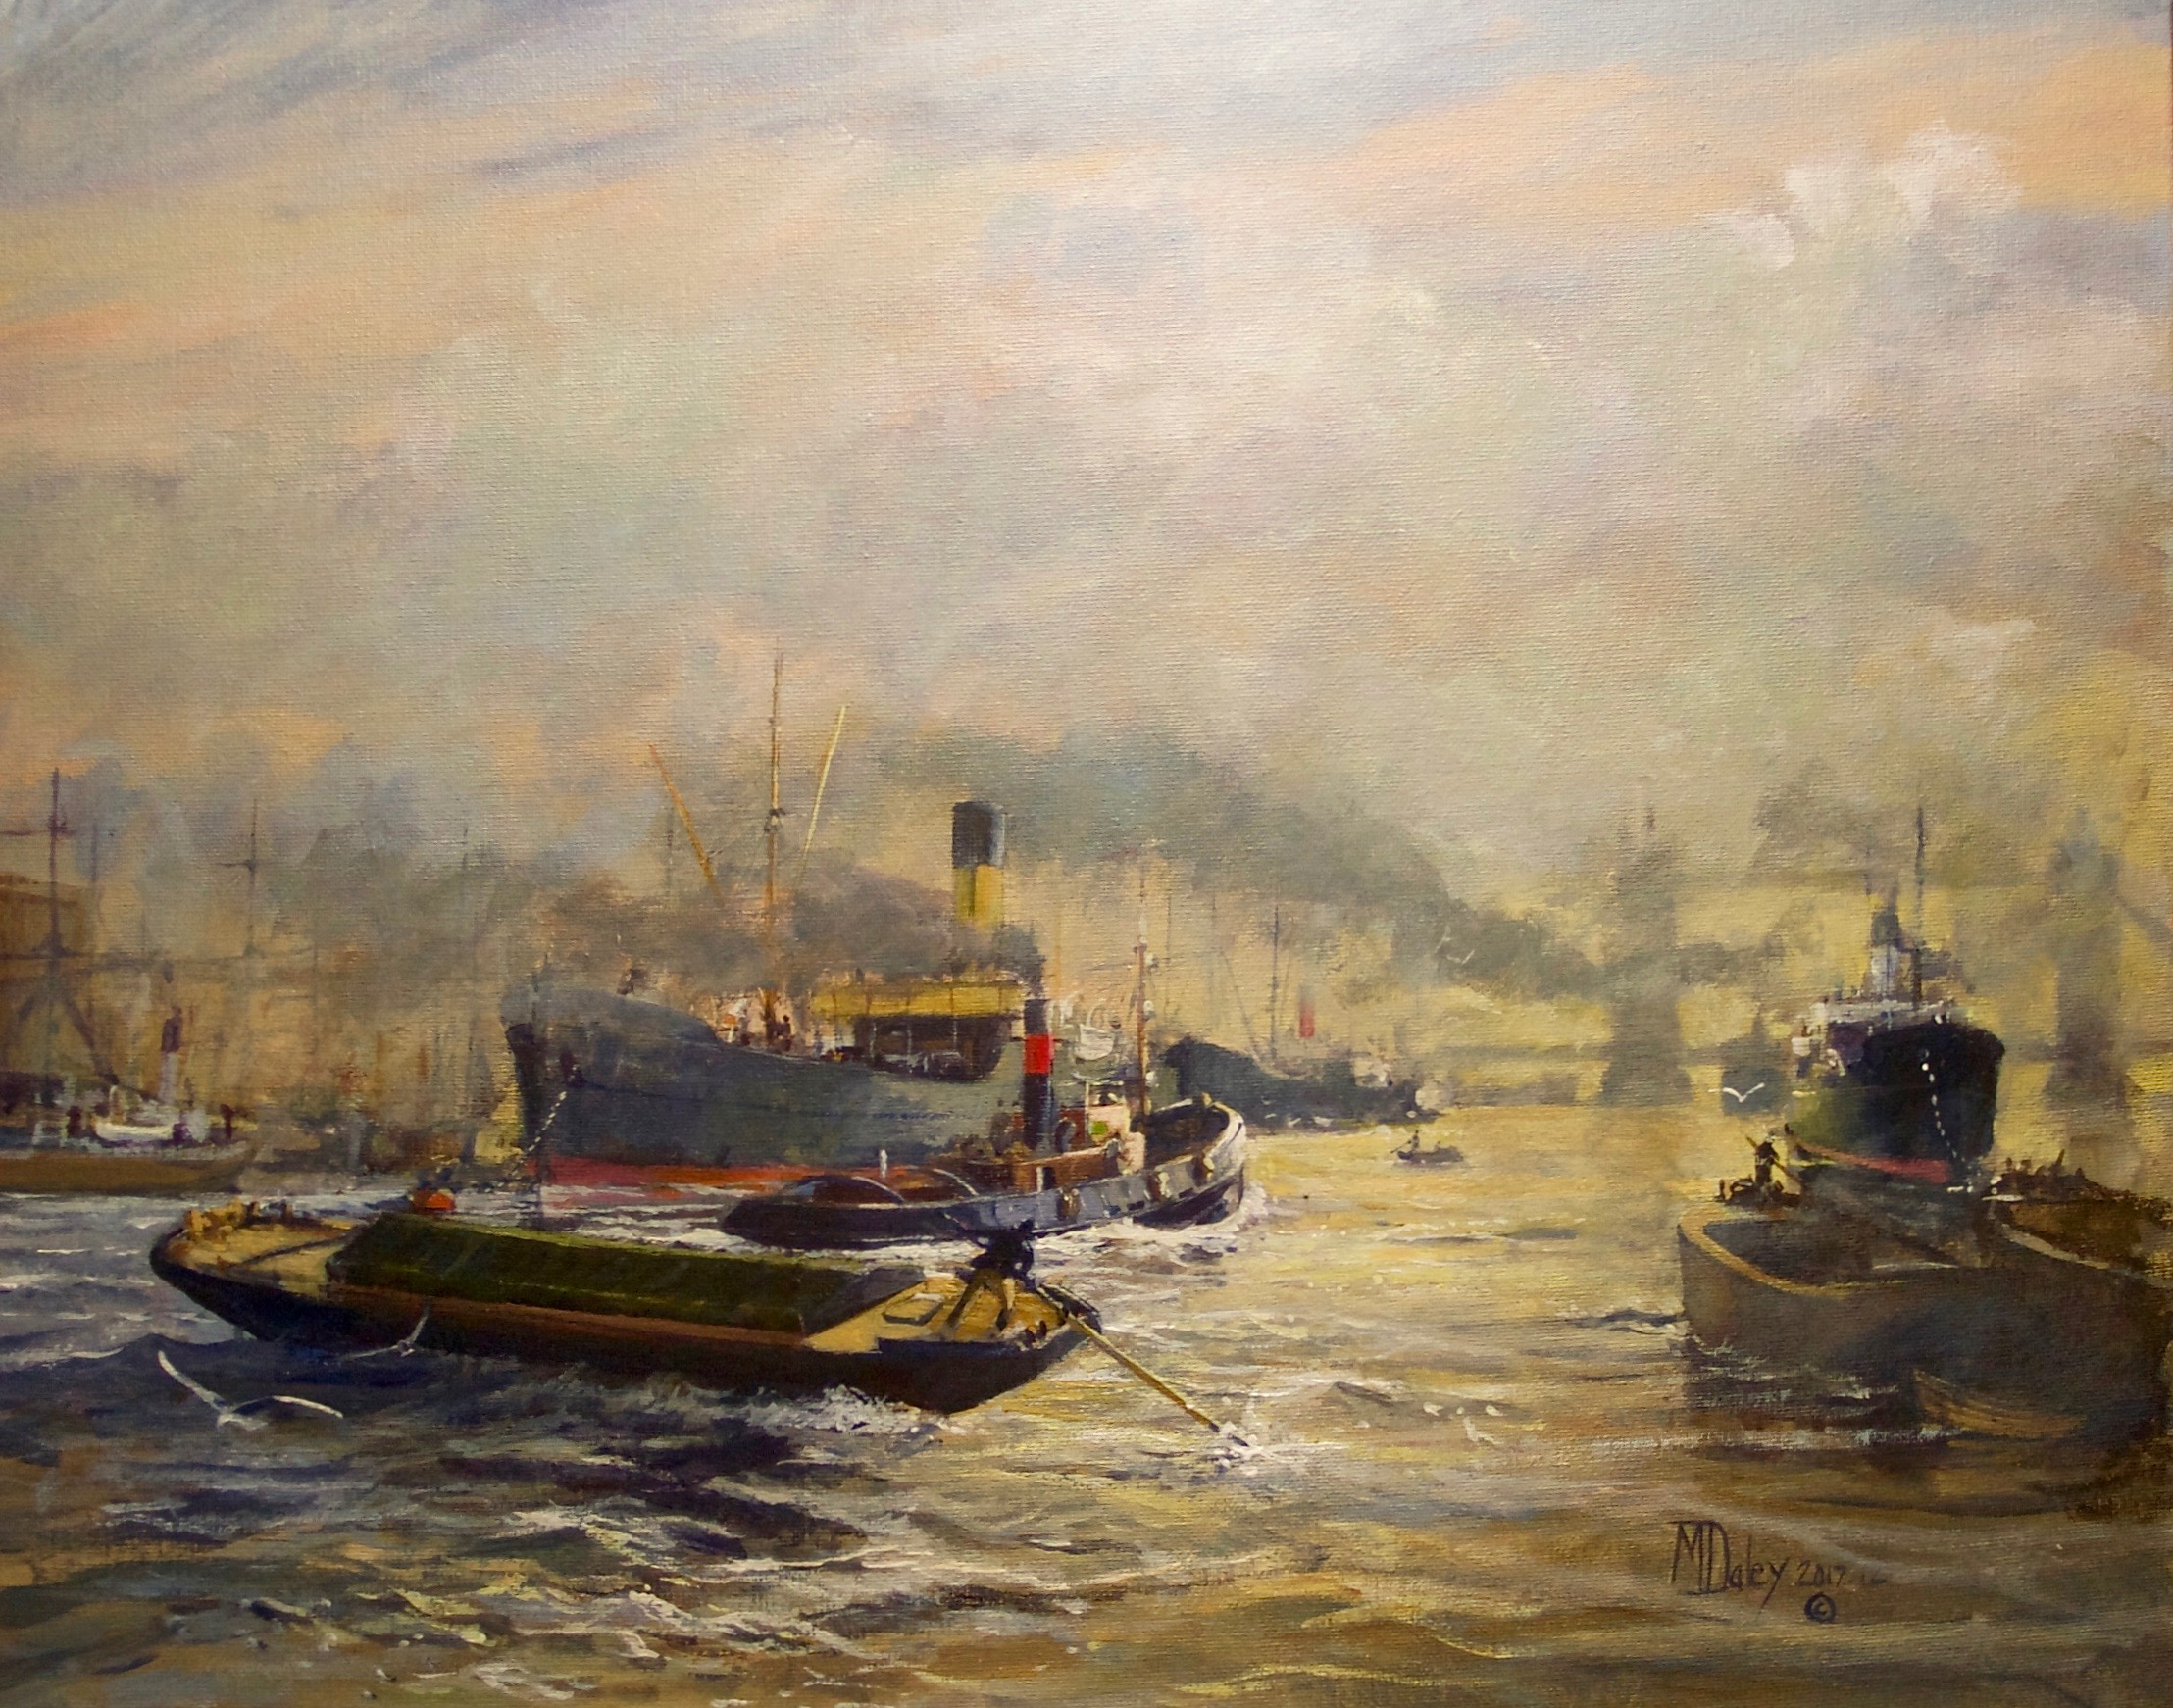 BUSTLE AND STEAM - THE LONDON HIGHWAY: 16 x20 in: acrylic